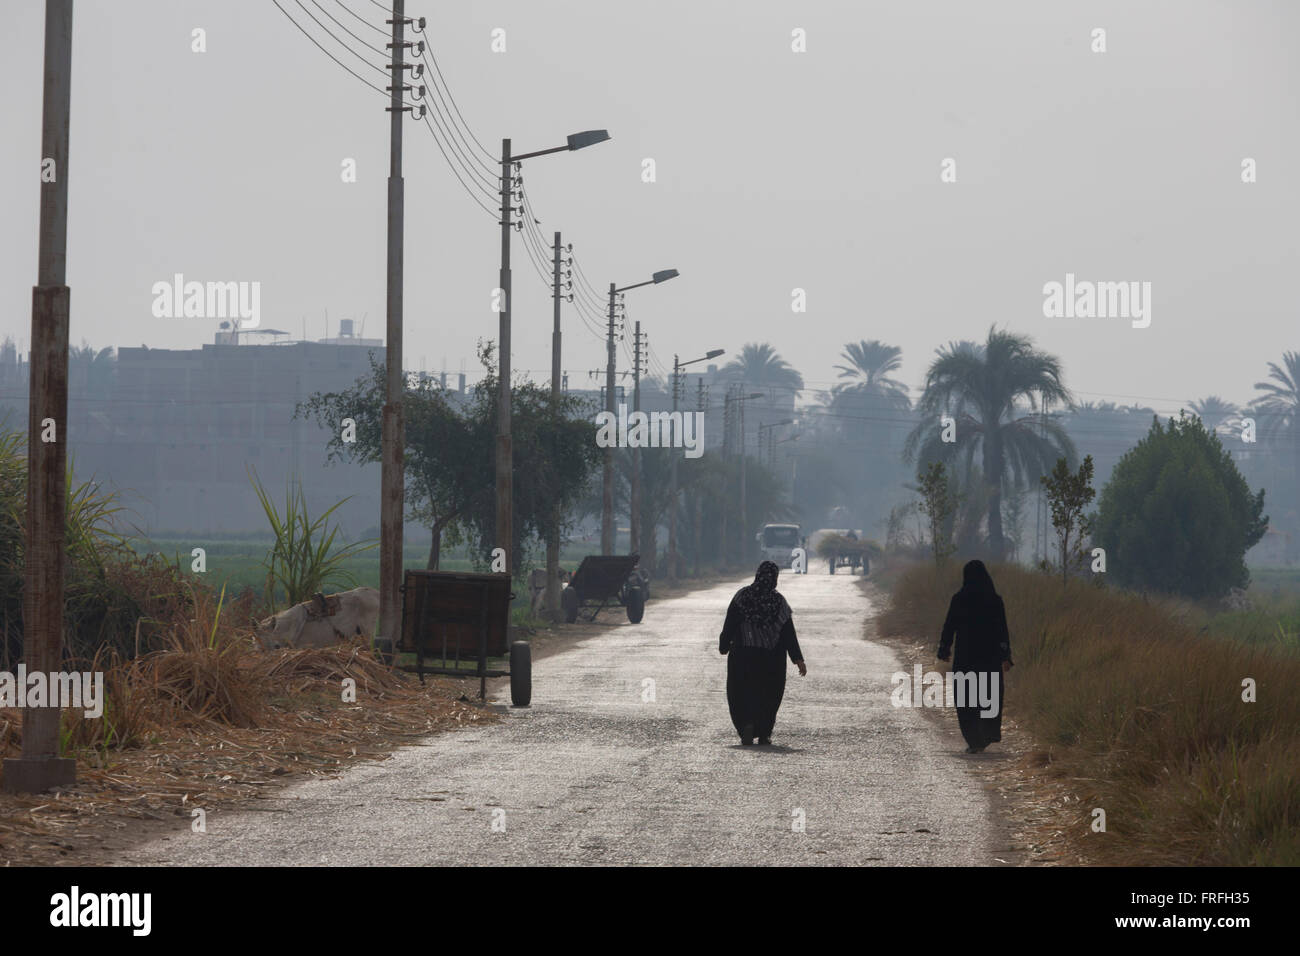 Local women walk along a hot road towards Qurna, a village on the West Bank of Luxor, Nile Valley, Egypt. In Egypt, - Stock Image